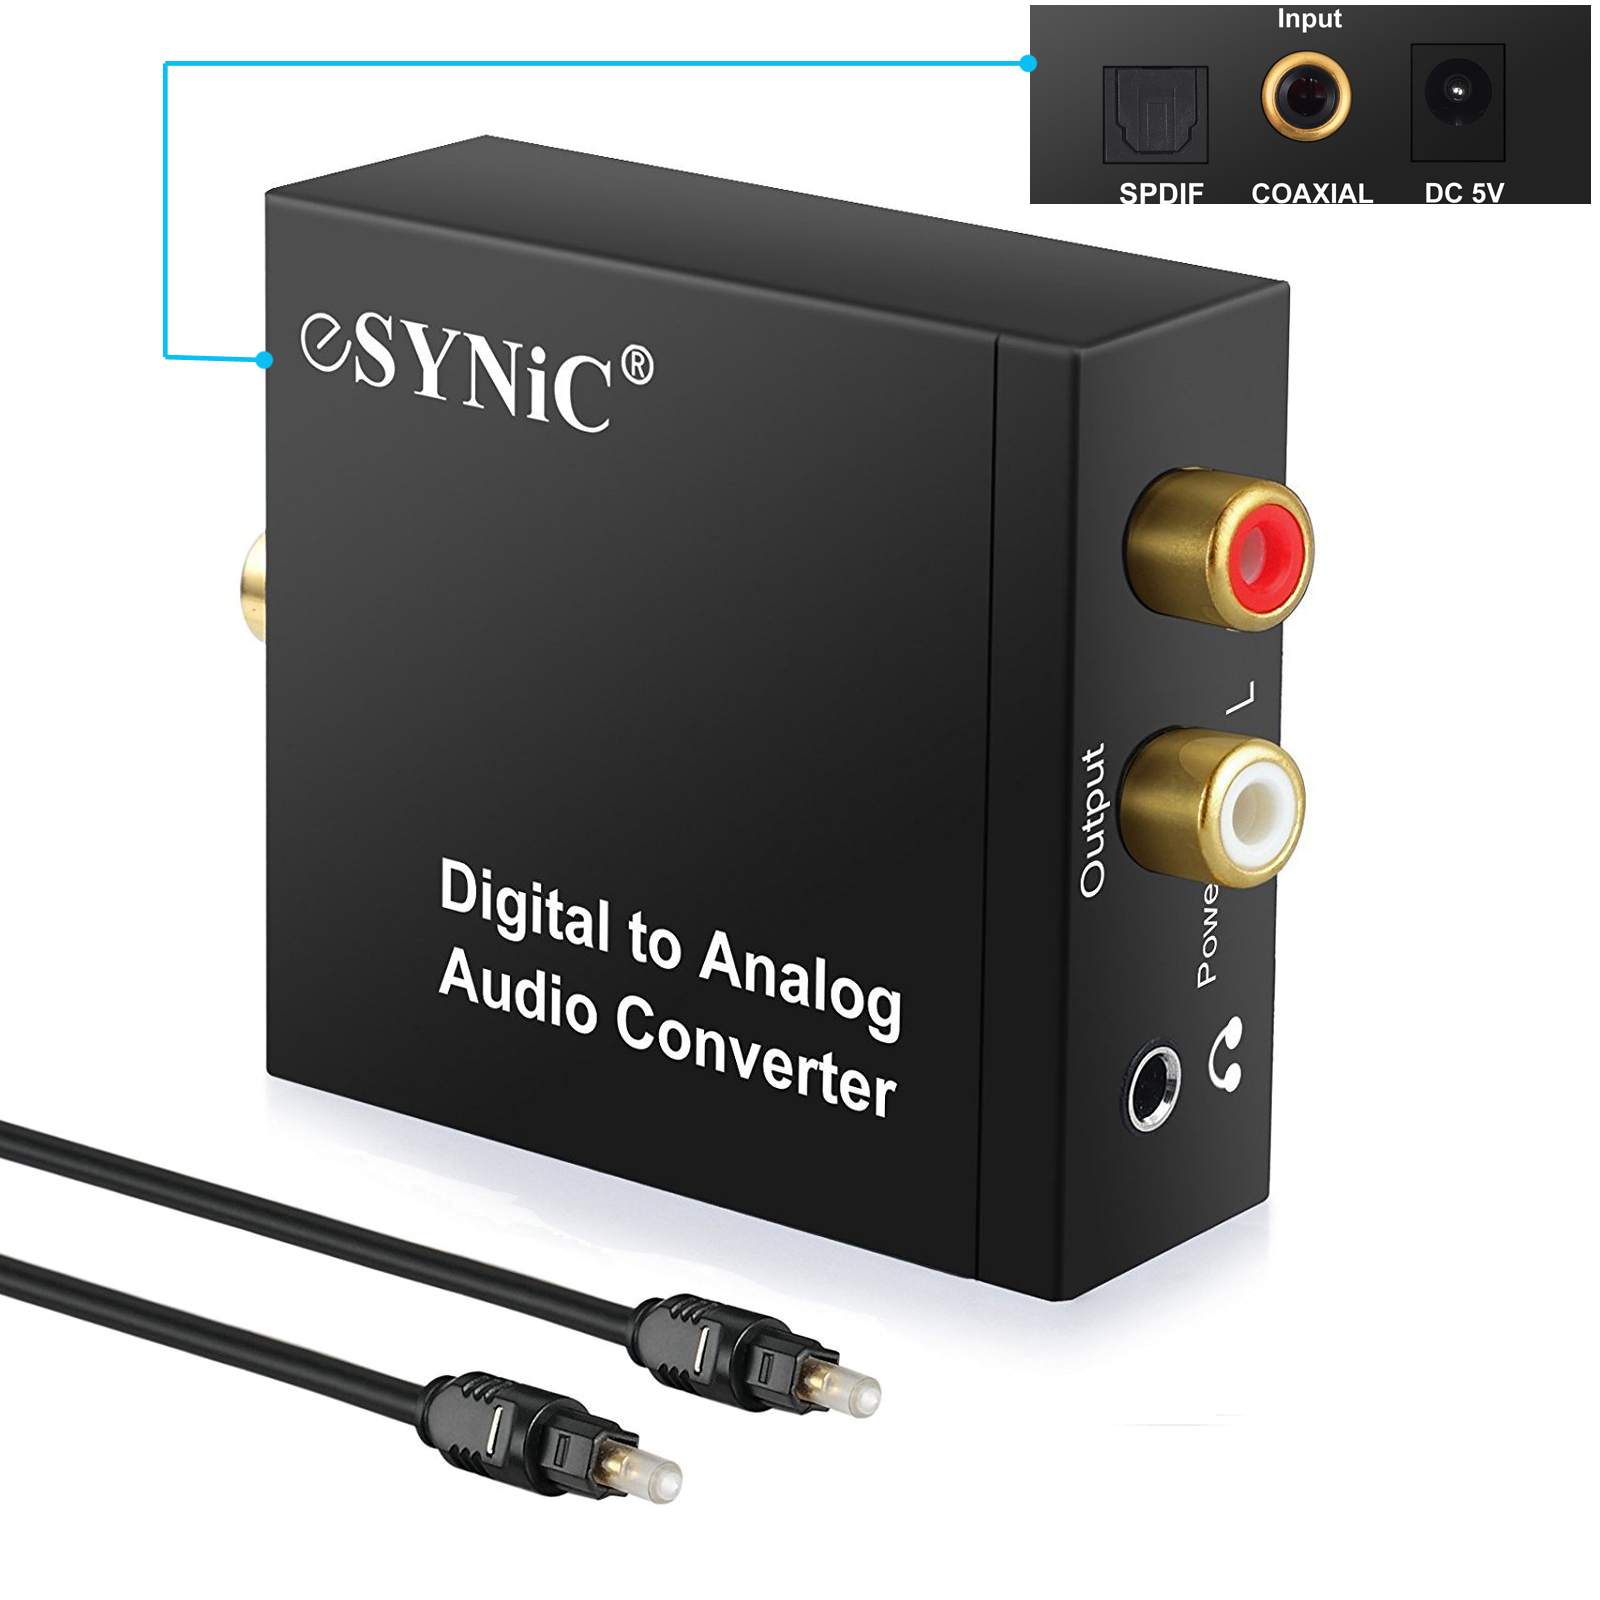 ESYNIC Toslink Signal Optical Coaxial Digital to Analog Audio Converter Adapter RCA L/R with Fiber Cable for HDTV XBox PS3 Blu-ray Player